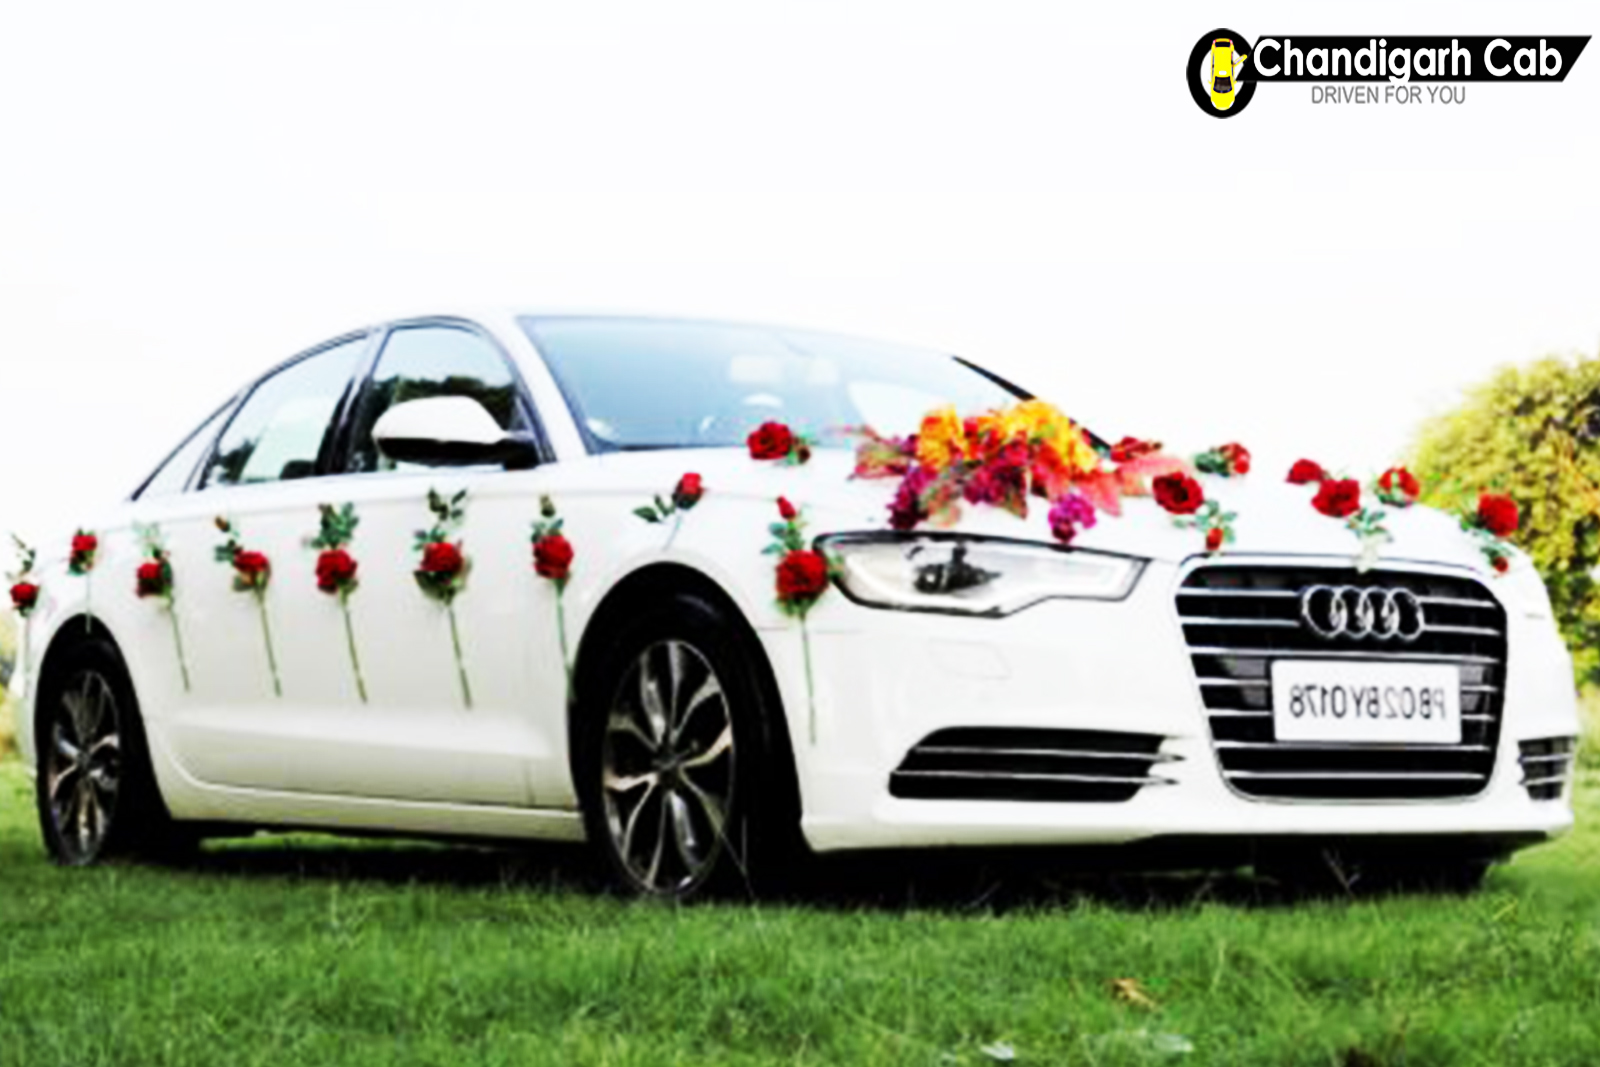 Luxury Wedding Cars, Luxury Chandigarh Cab, Hire Luxury Cars in Chandigarh, Wedding cars in Chandigarh, doli cars, shadi car